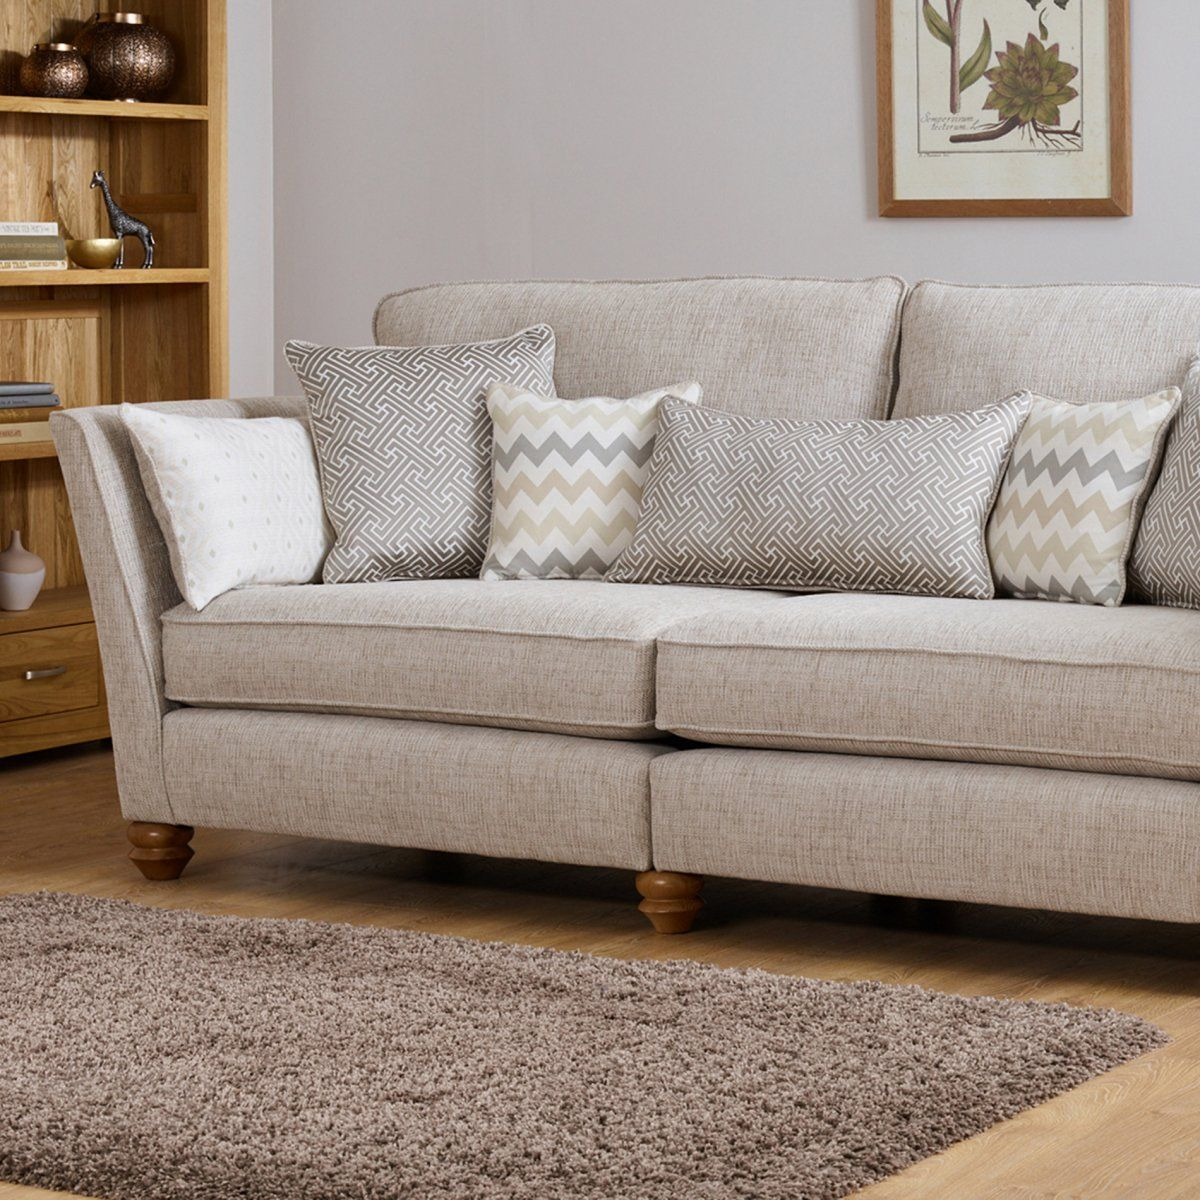 Gainsborough 4 Seater Sofa In Beige With Beige Scatters Koltuklar